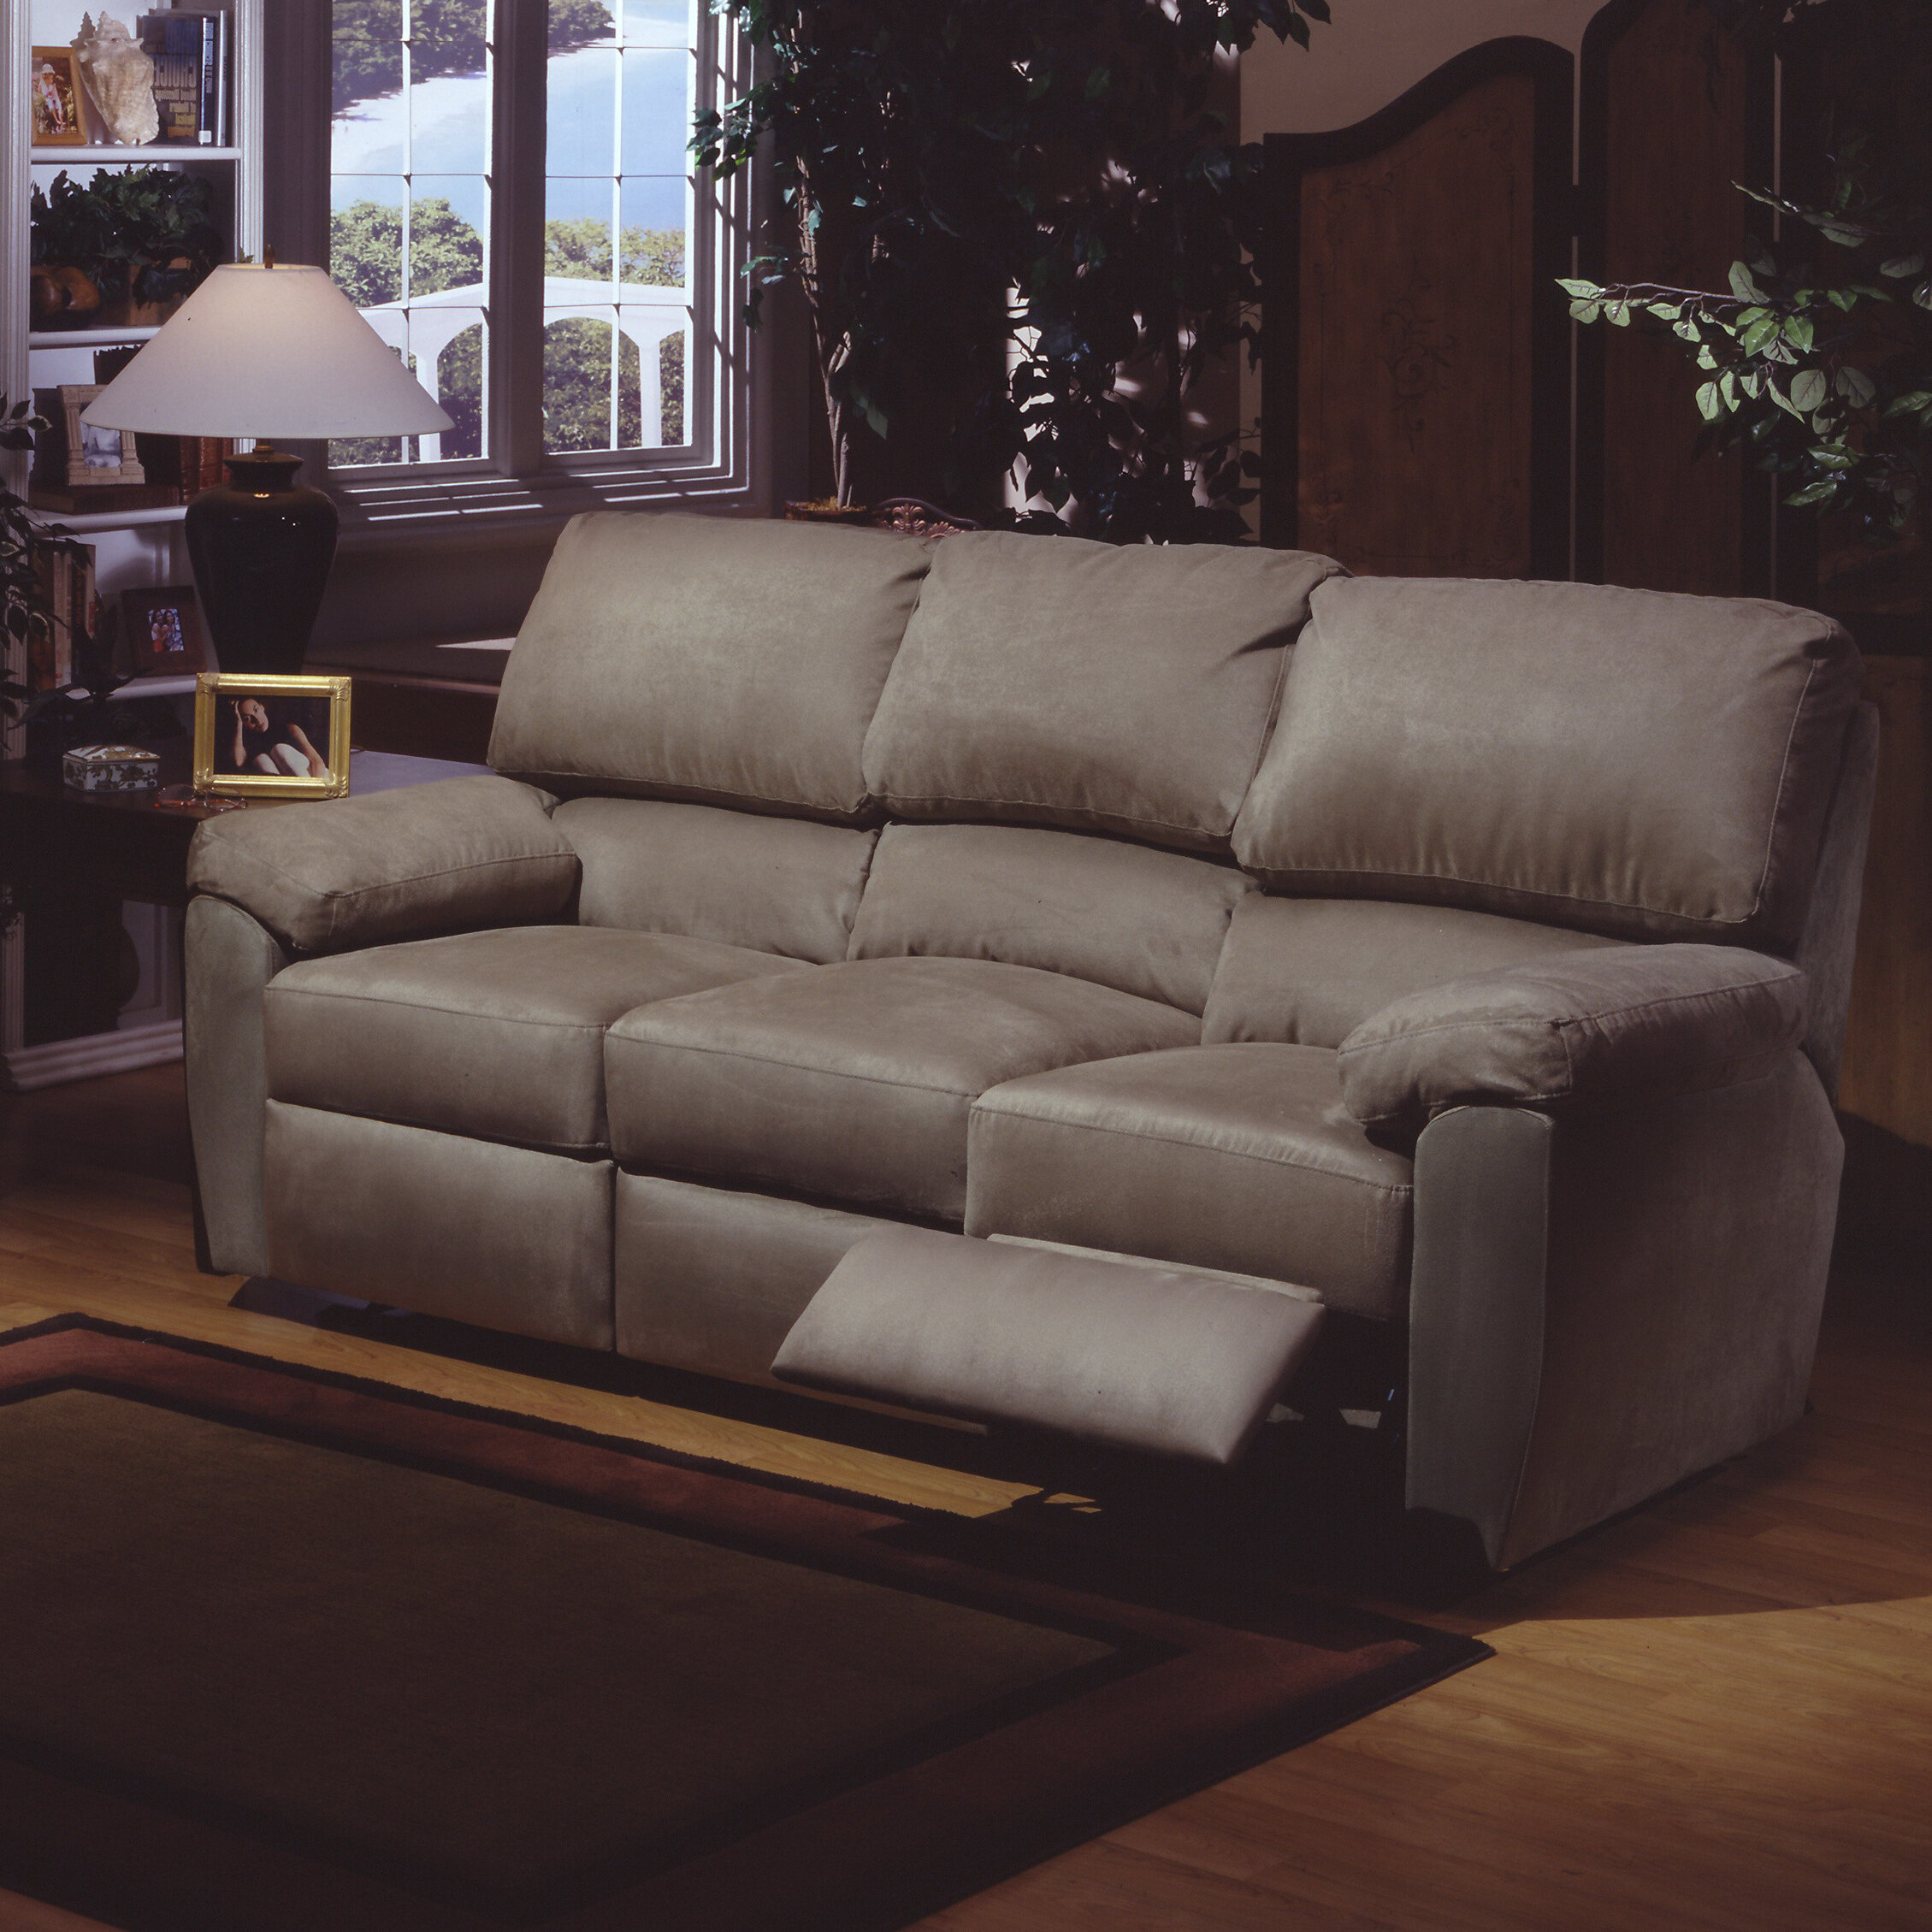 Omnia Leather Vercelli Reclining 3 Piece Leather Living Room Set ...